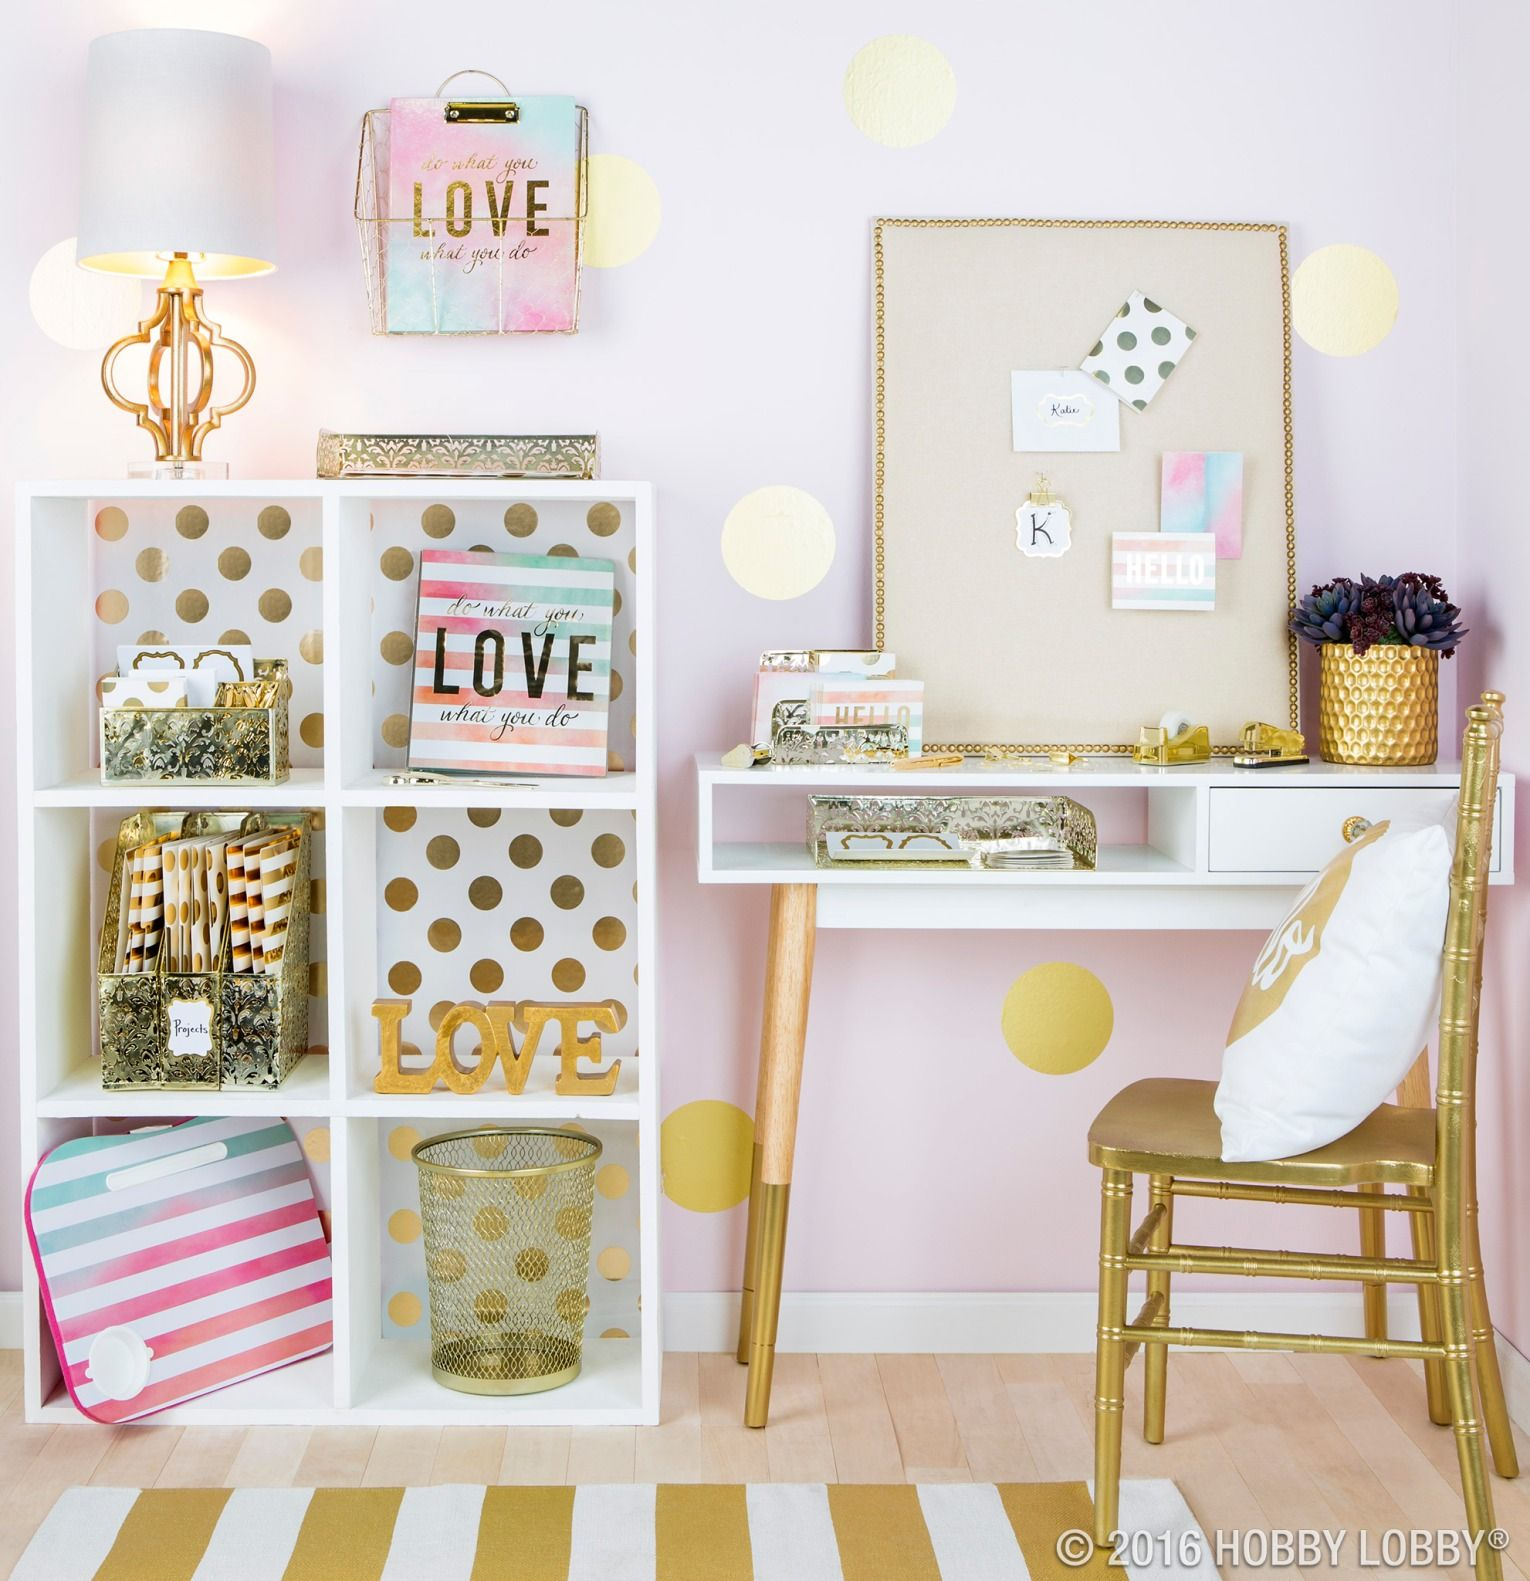 Inspiration Starts With Your Workspace Glam It Up With Pops Of Gold And Vibrant Watercolor Accents To Help Kick Yo Dorm Decorations Room Inspiration Girl Room